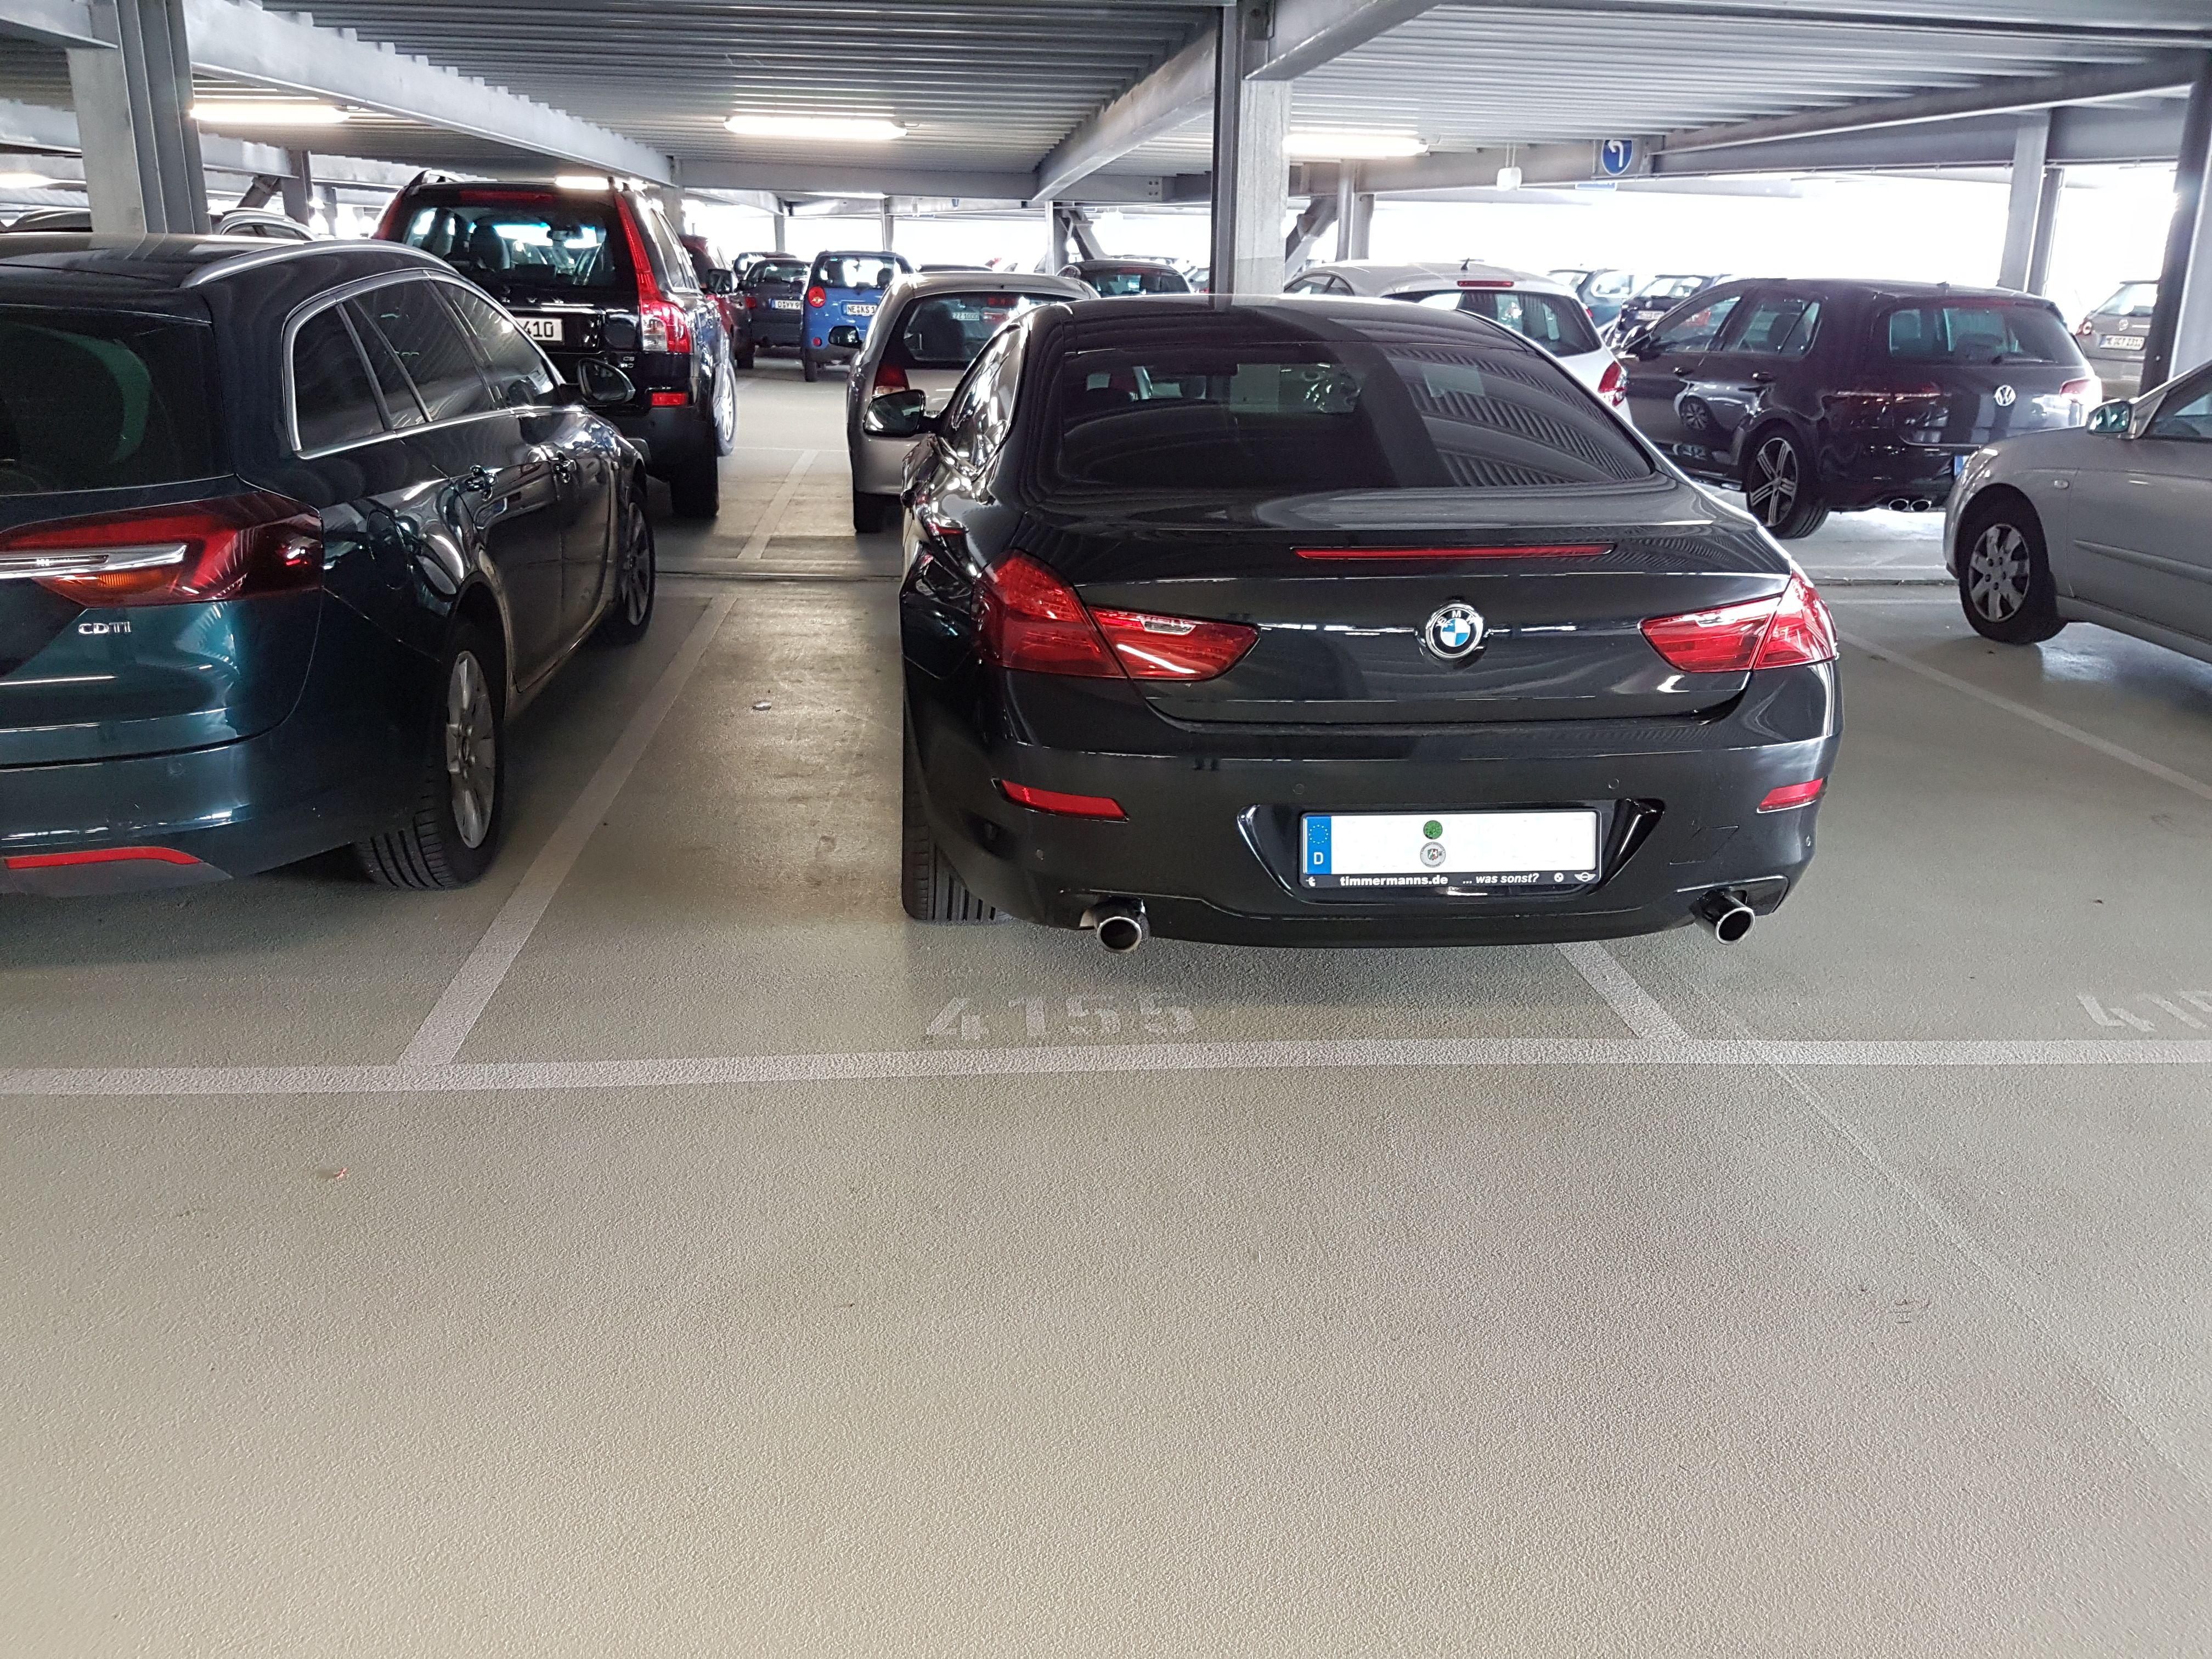 Birmingham airport parking meet and greet the best airport of 2018 birmingham airport meet and greet parking we ll park your car kristyandbryce Images